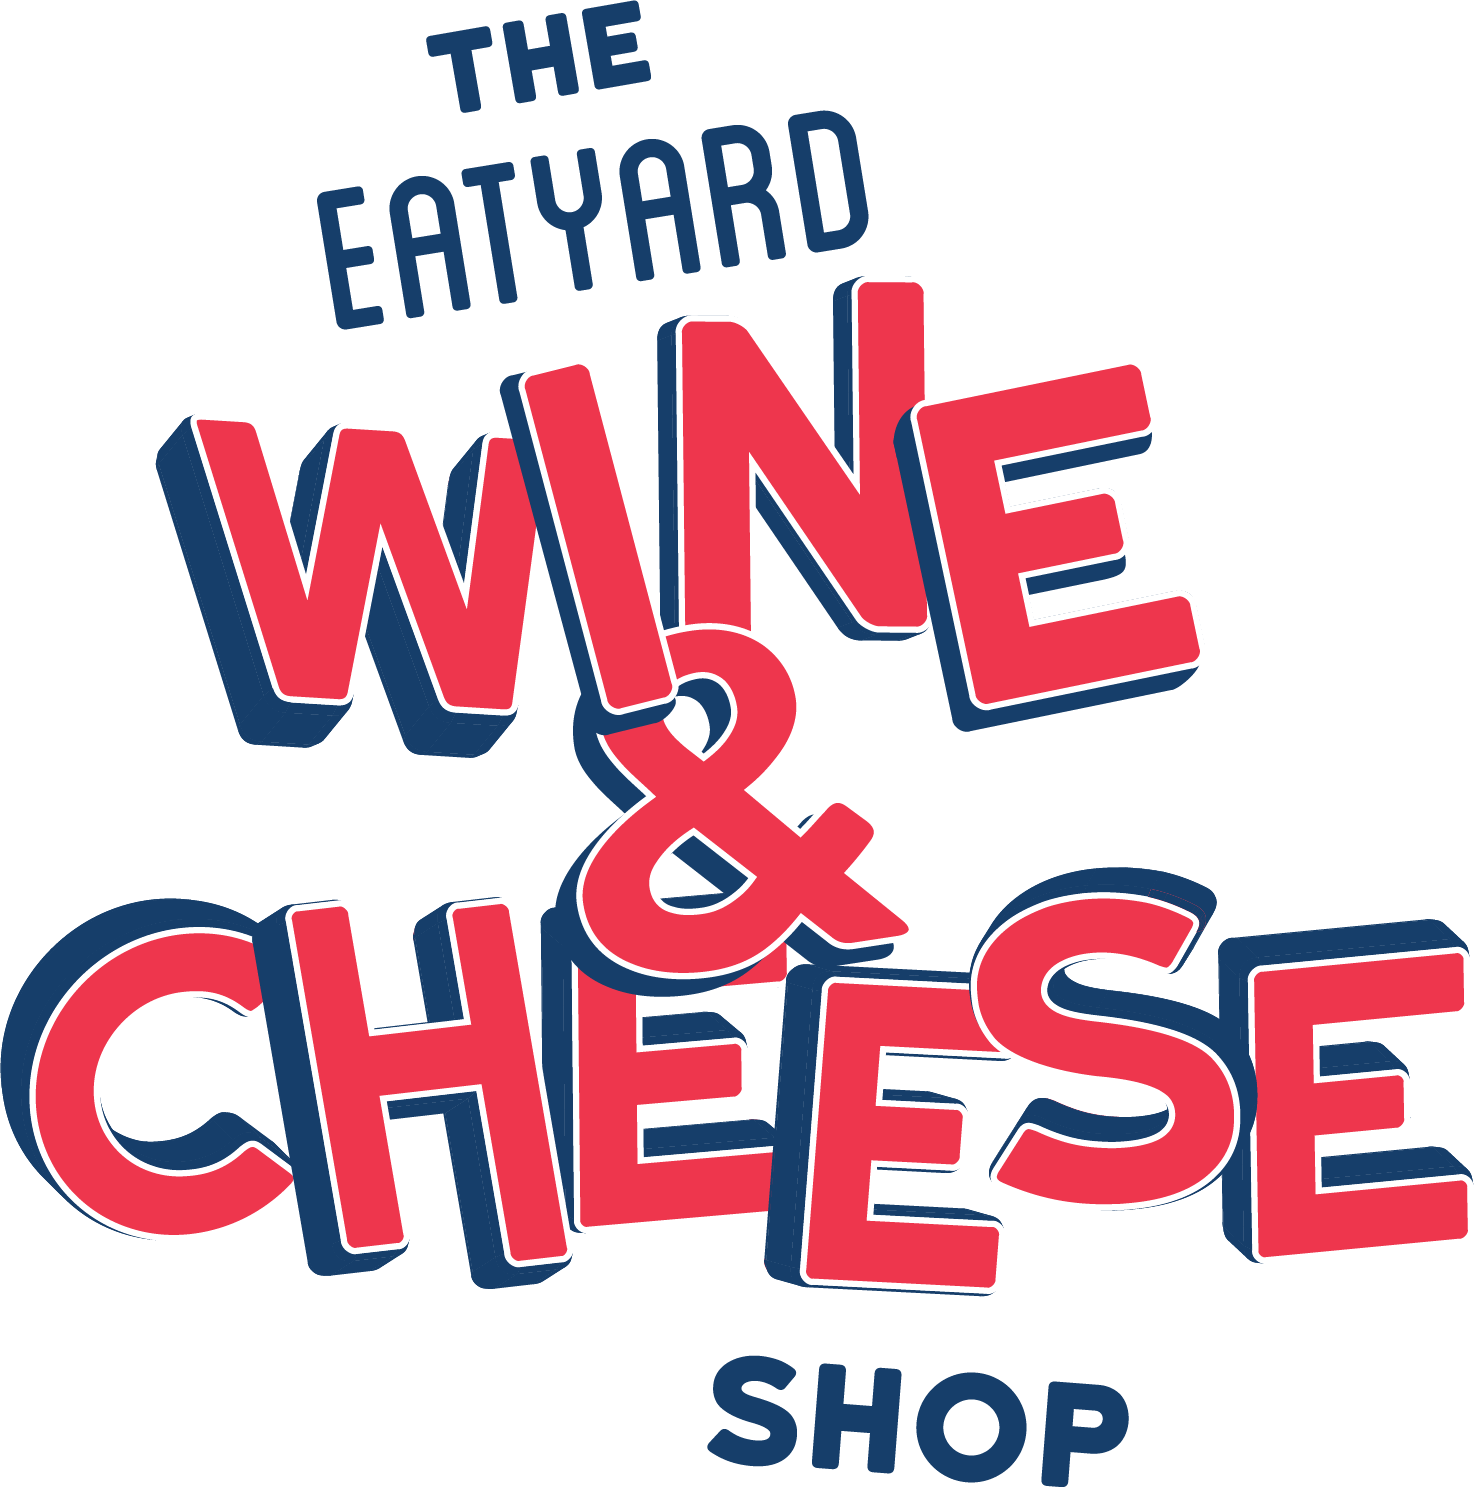 The Eatyard Wine & Cheese Shop